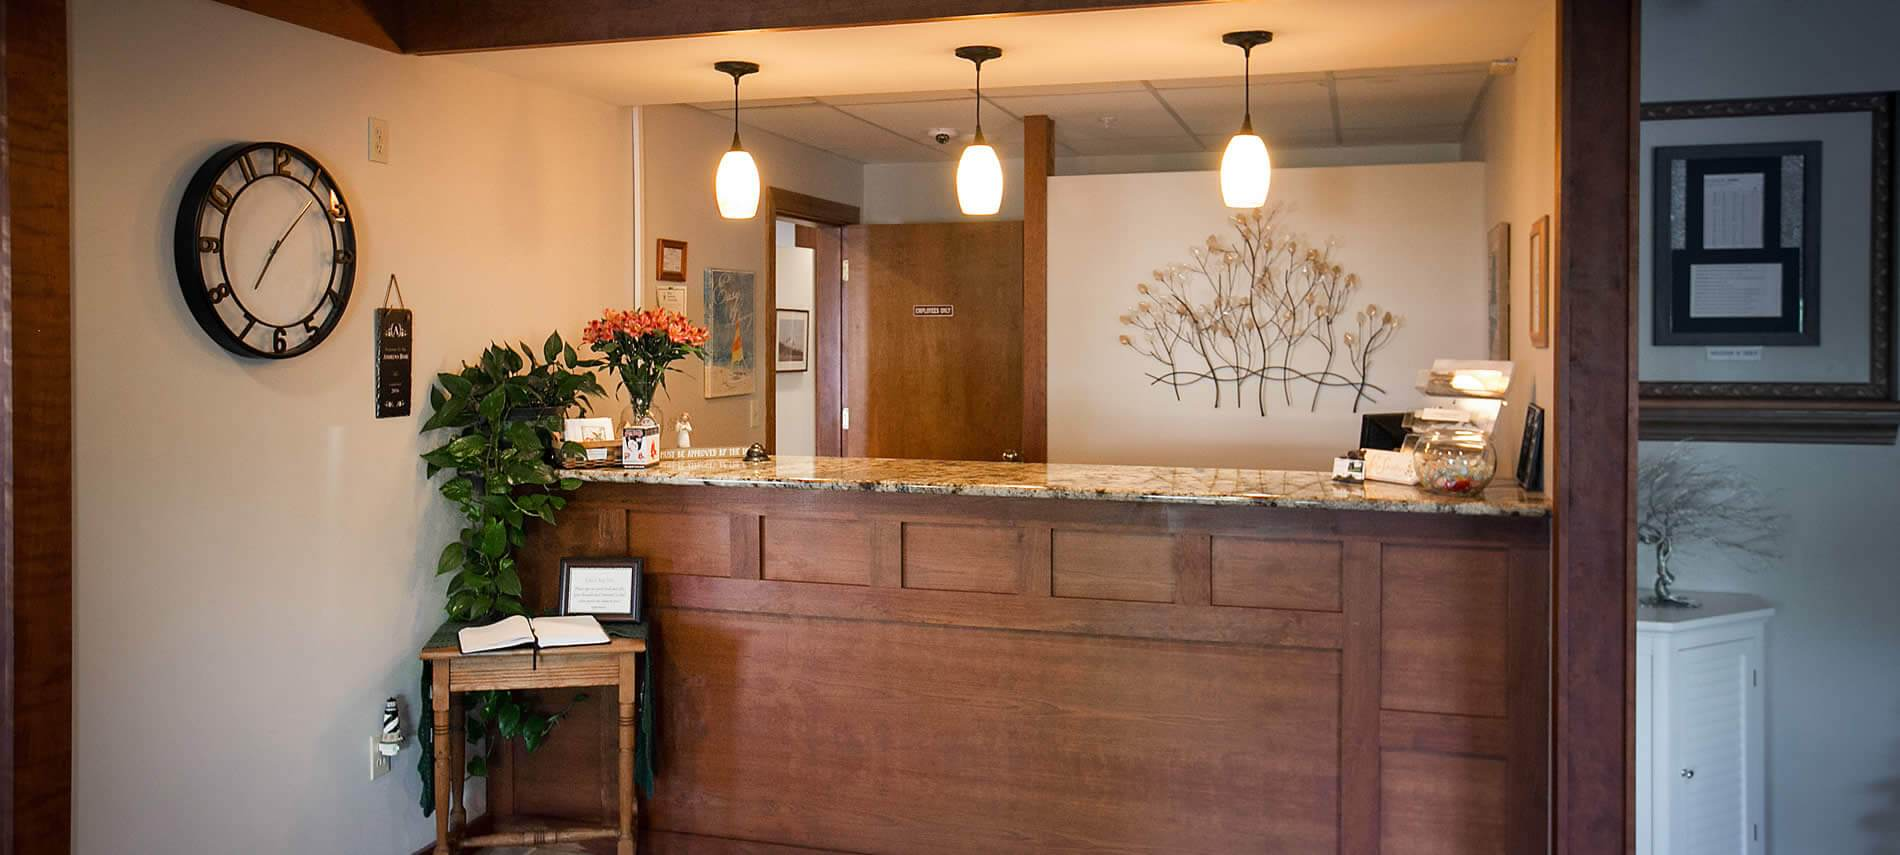 Wood stained welcome counter topped with fresh flowers and three hanging pendant lights